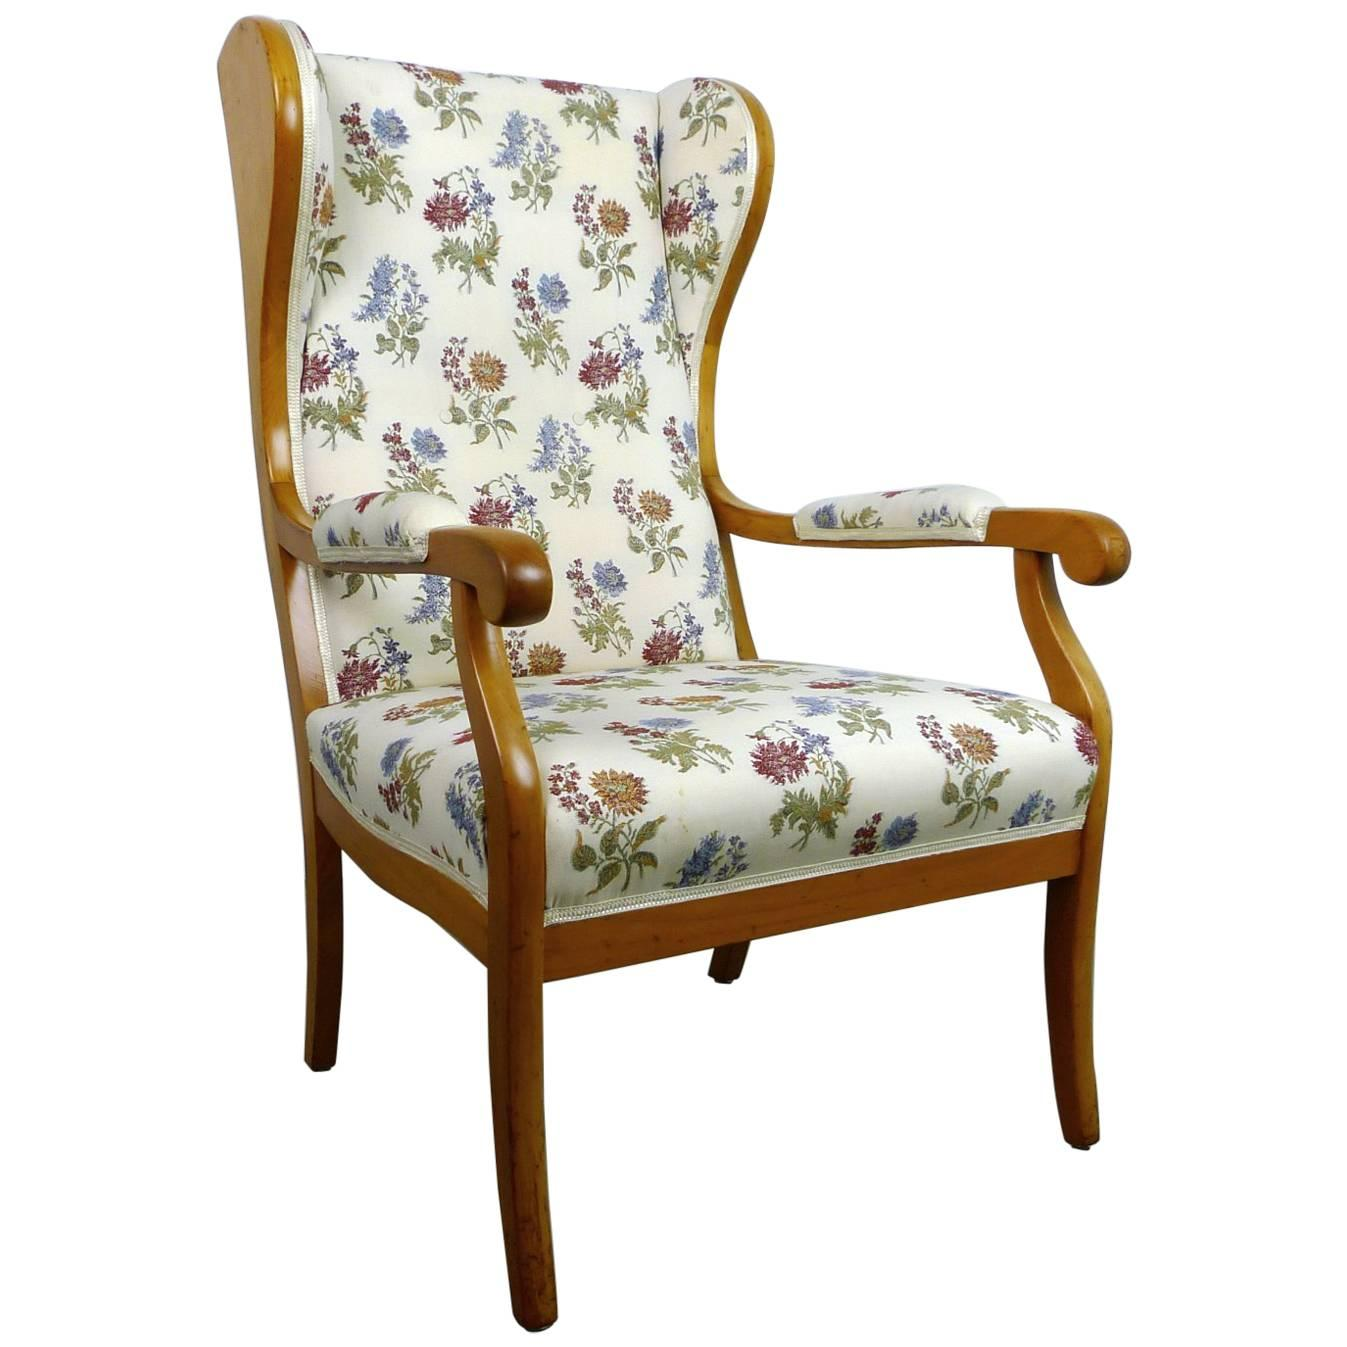 Antique Wingback Chair In Cherry, Germany, 1900 For Sale